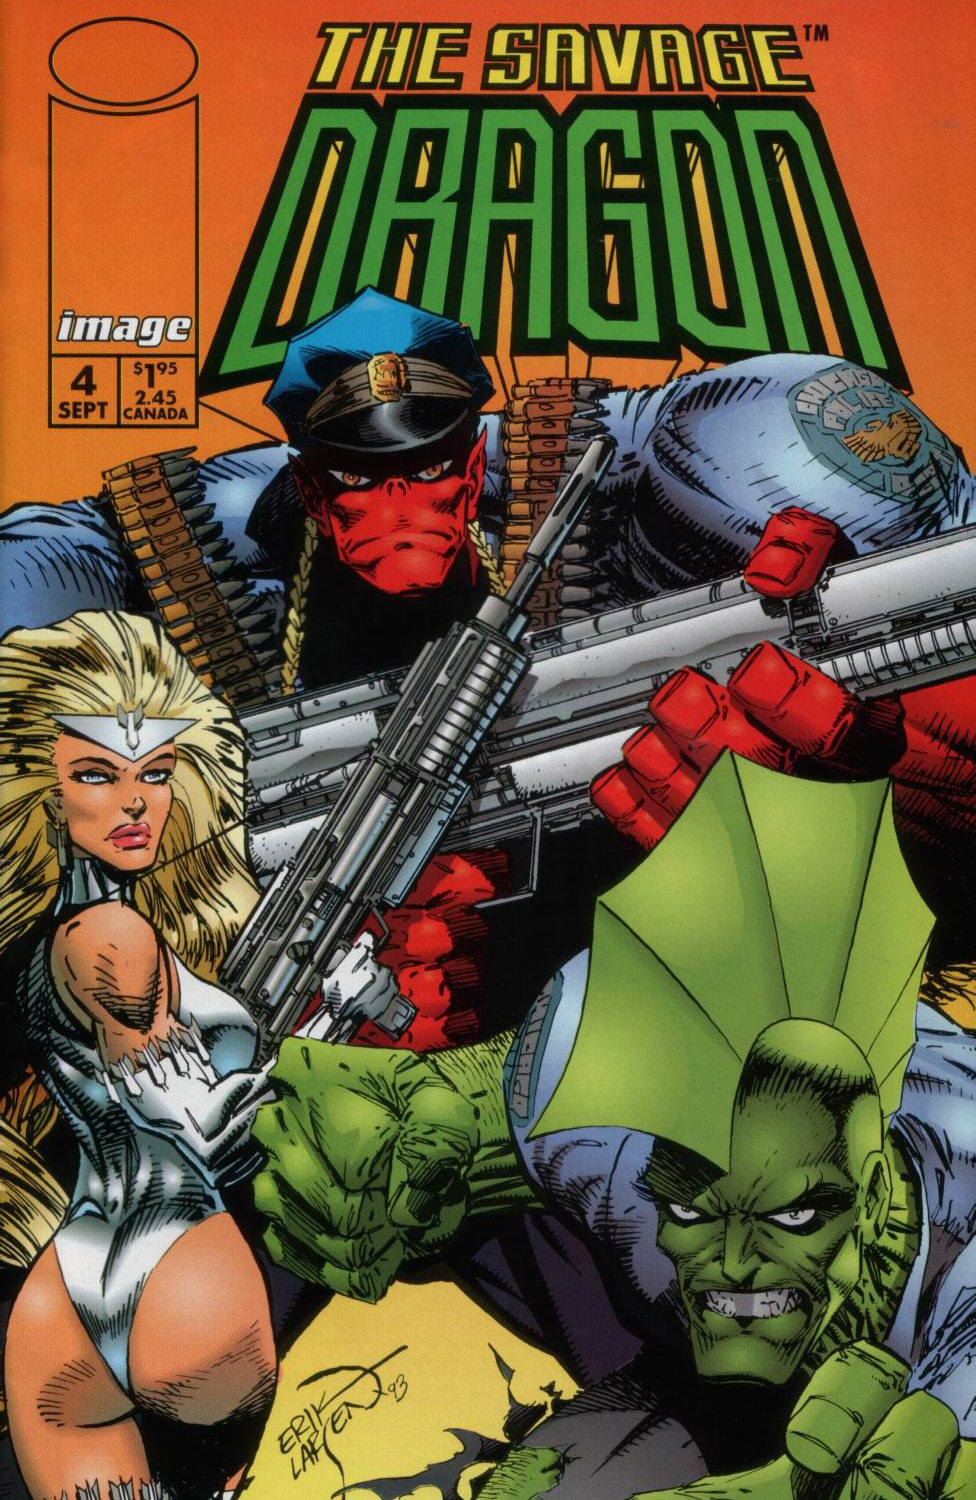 Cover Savage Dragon Vol.2 #4